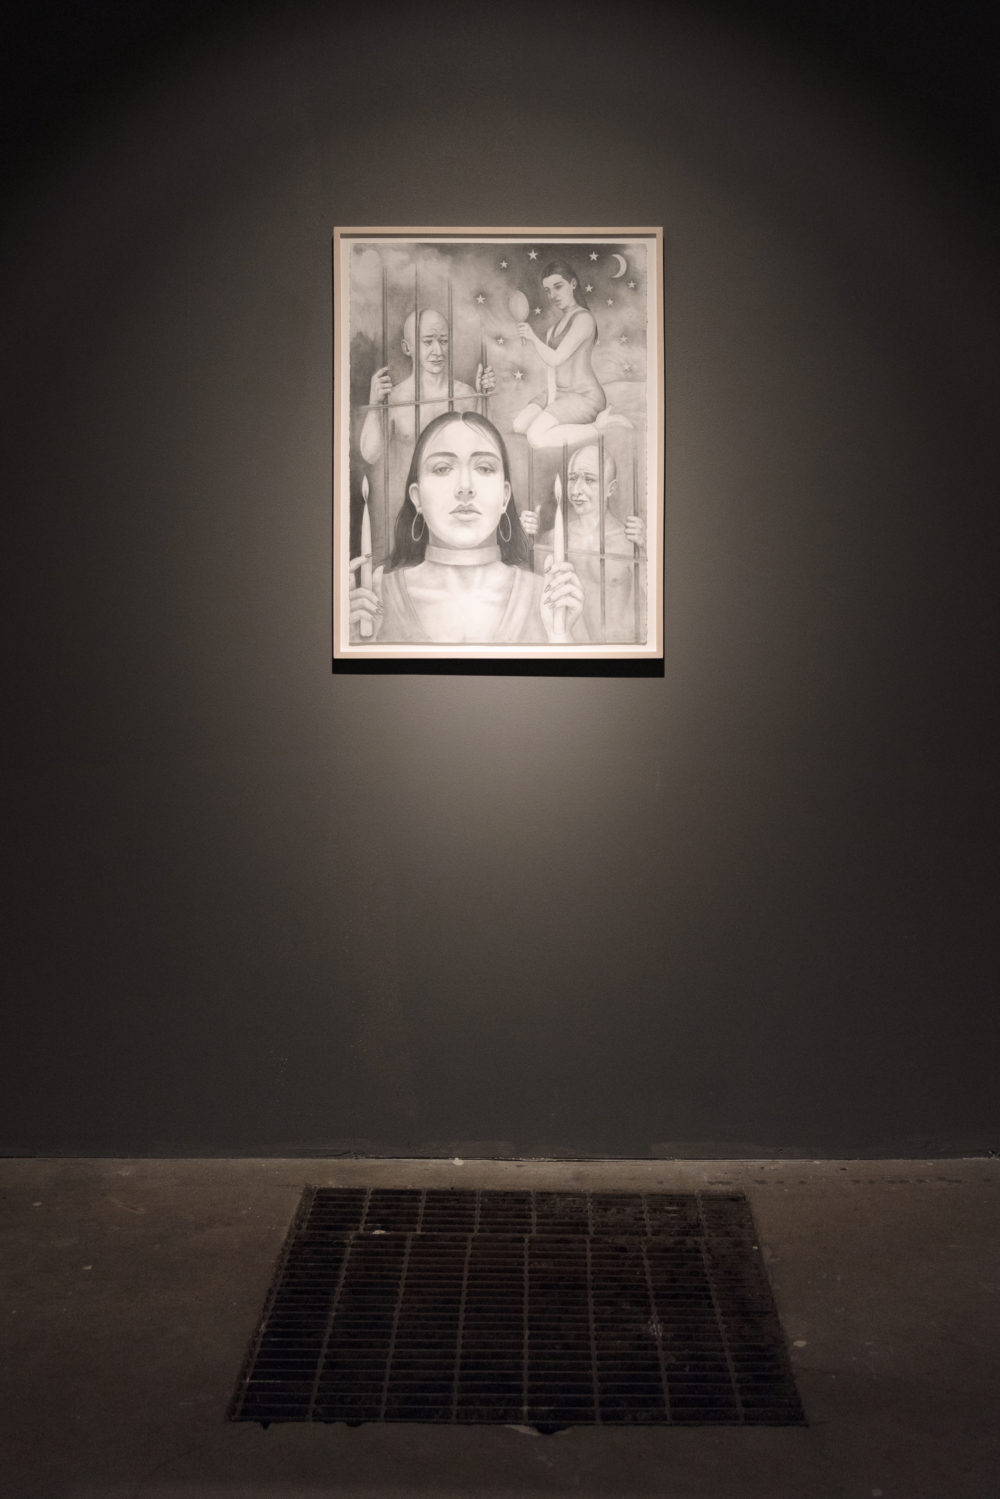 Flannery Silva i would sooner destroy my manhood than betray your heart (Installation view), 2016 Graphite drawing by Ion Birch on paper